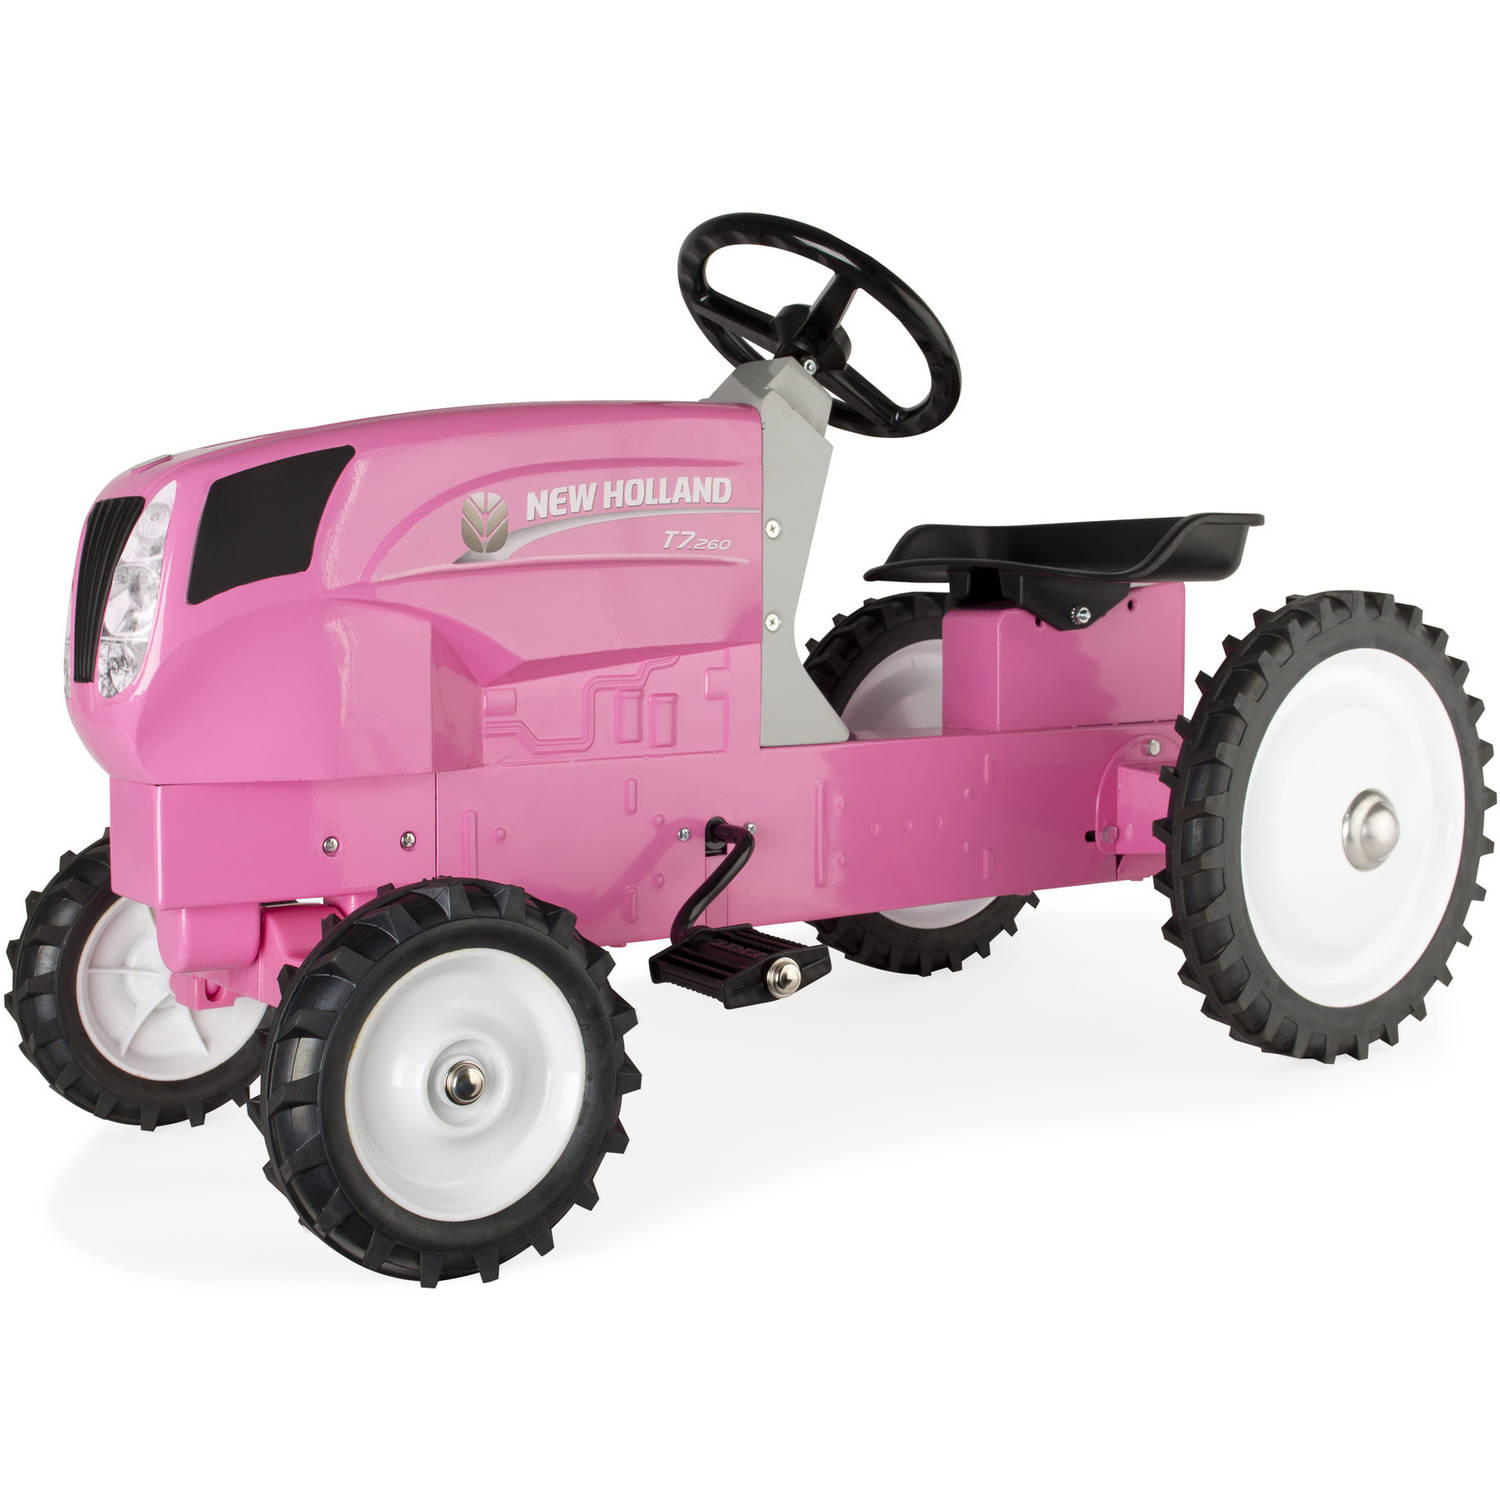 ERTL New Holland Pedal Tractor, Pink